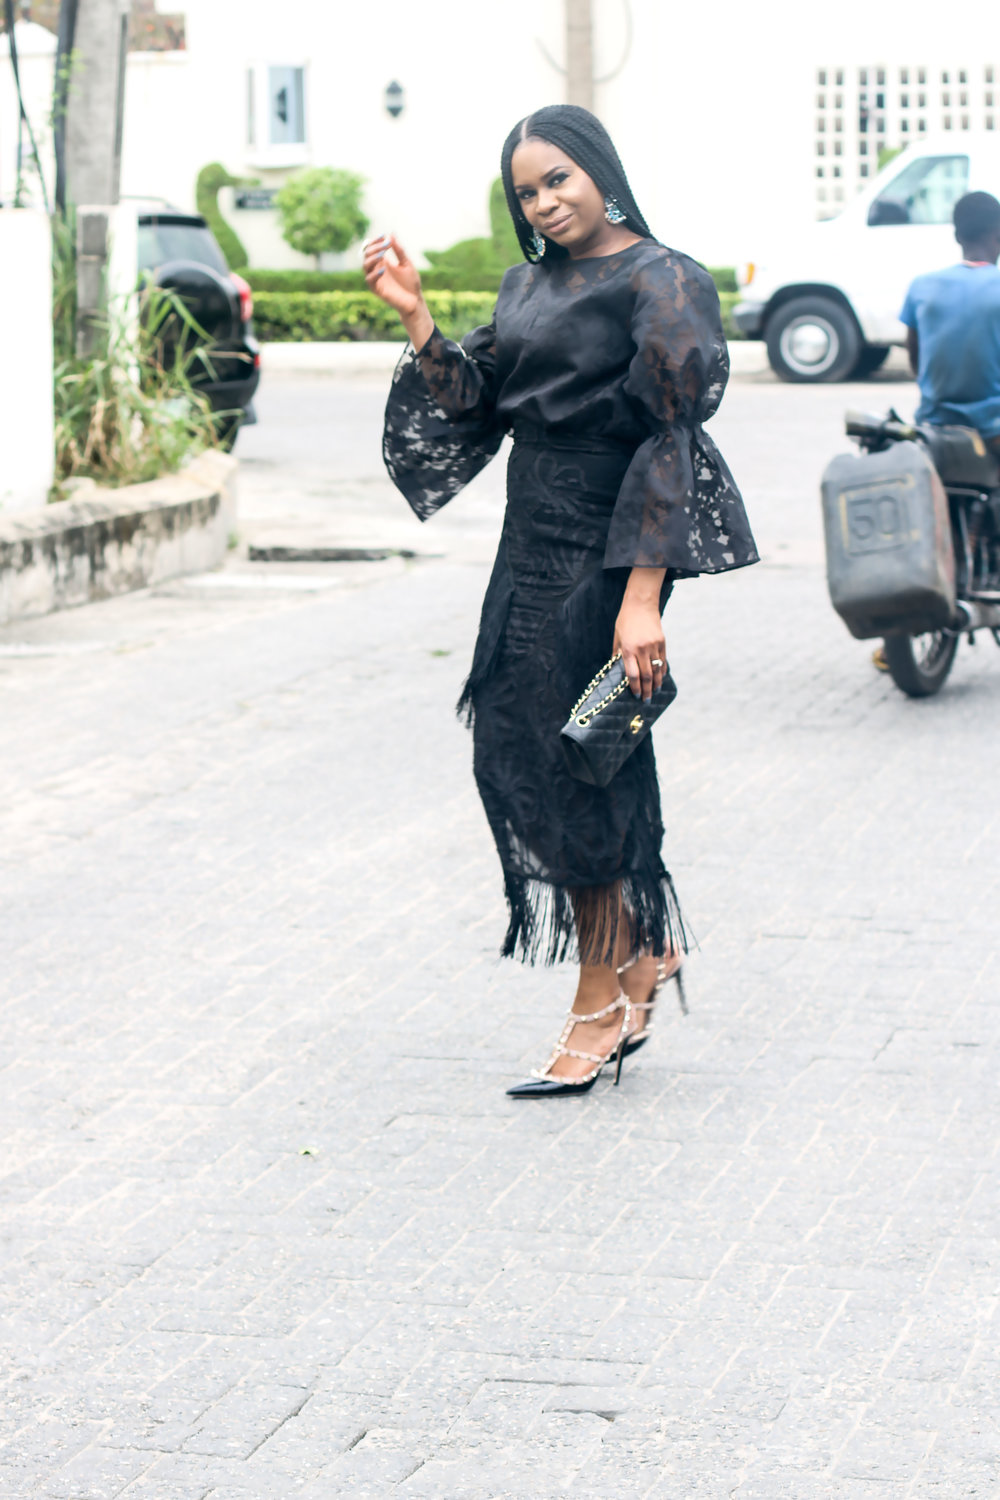 LACE IN LAGOS